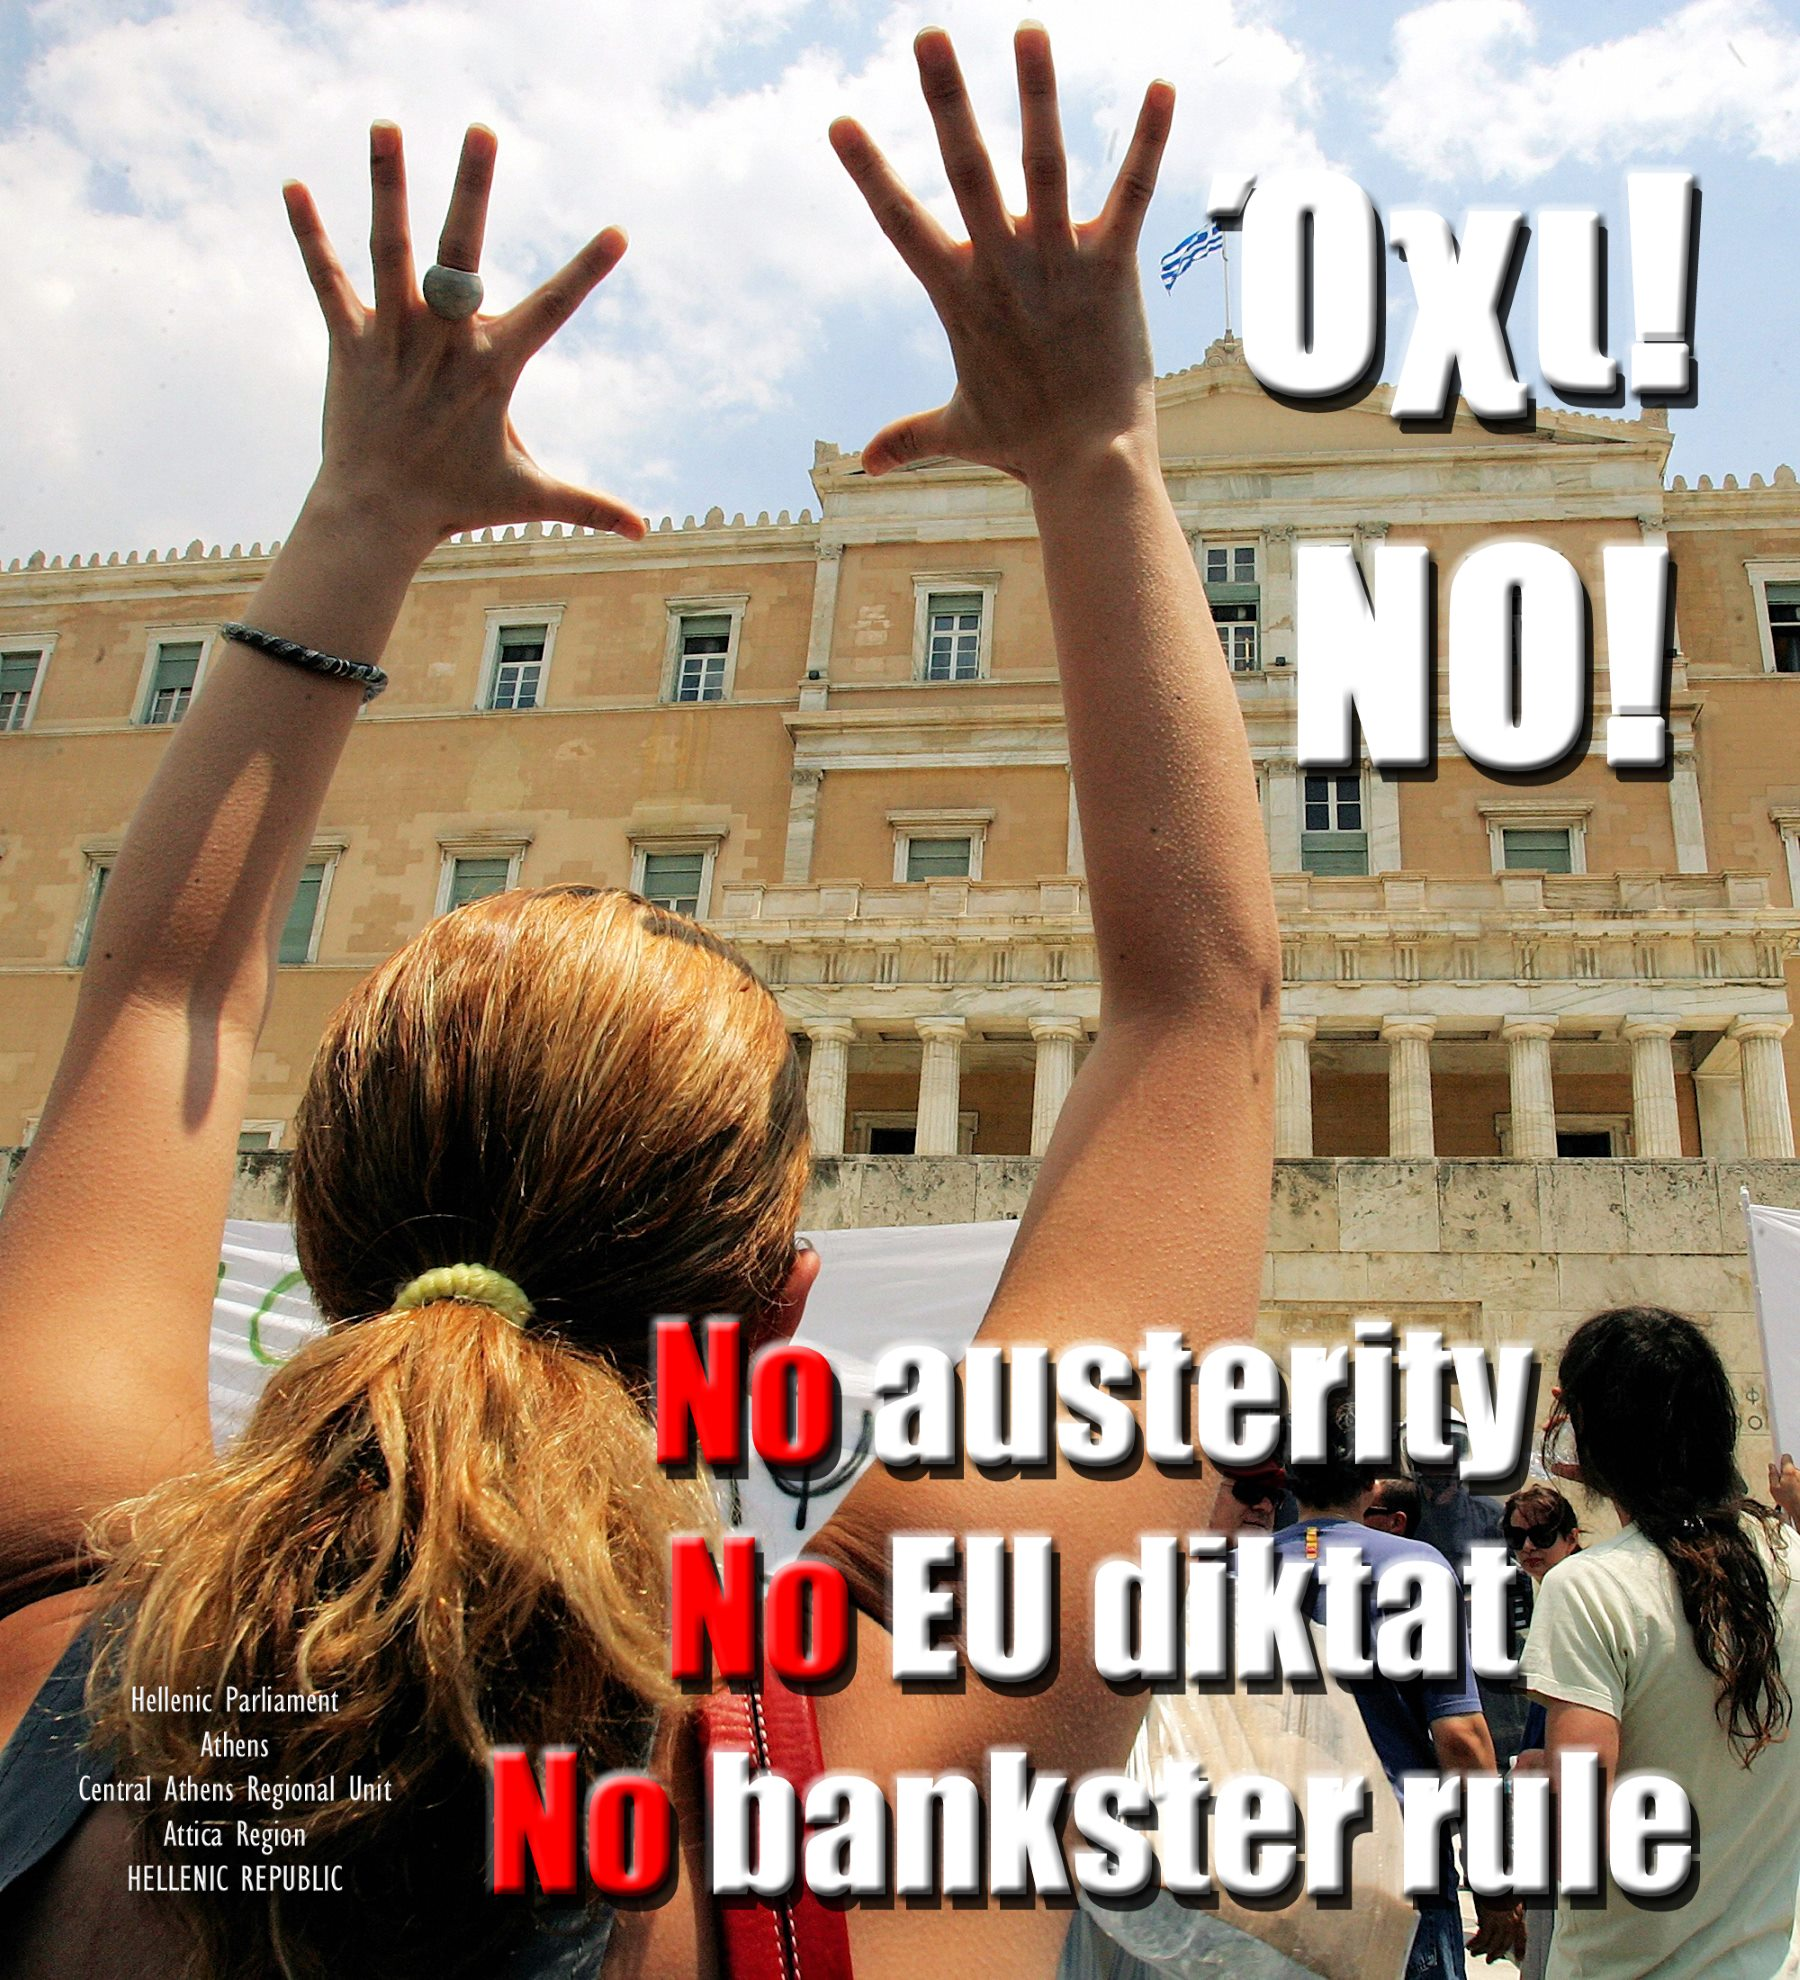 00 greece gives the moutza to the banksters 02. 060715